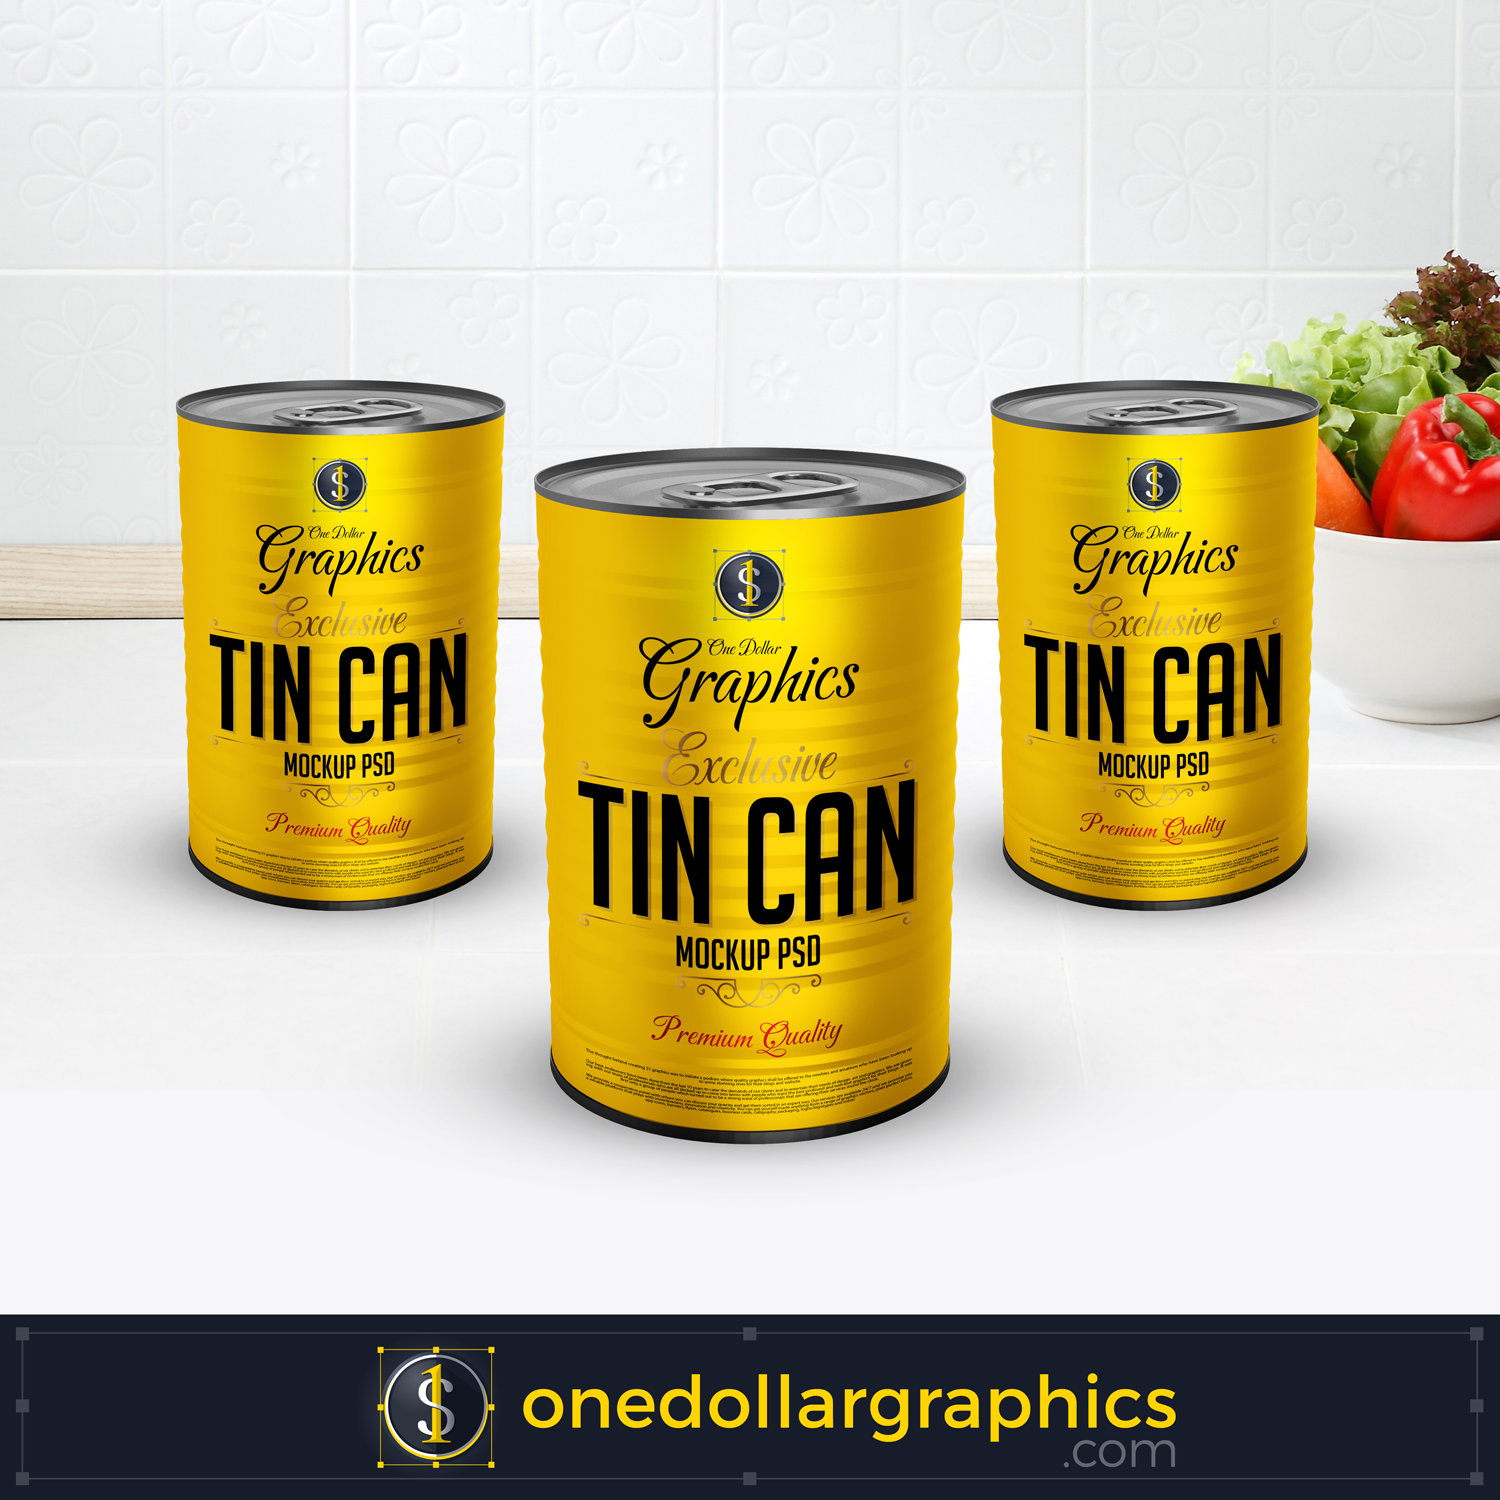 exclusive-tin-can-mock-up-psd-for-packaging